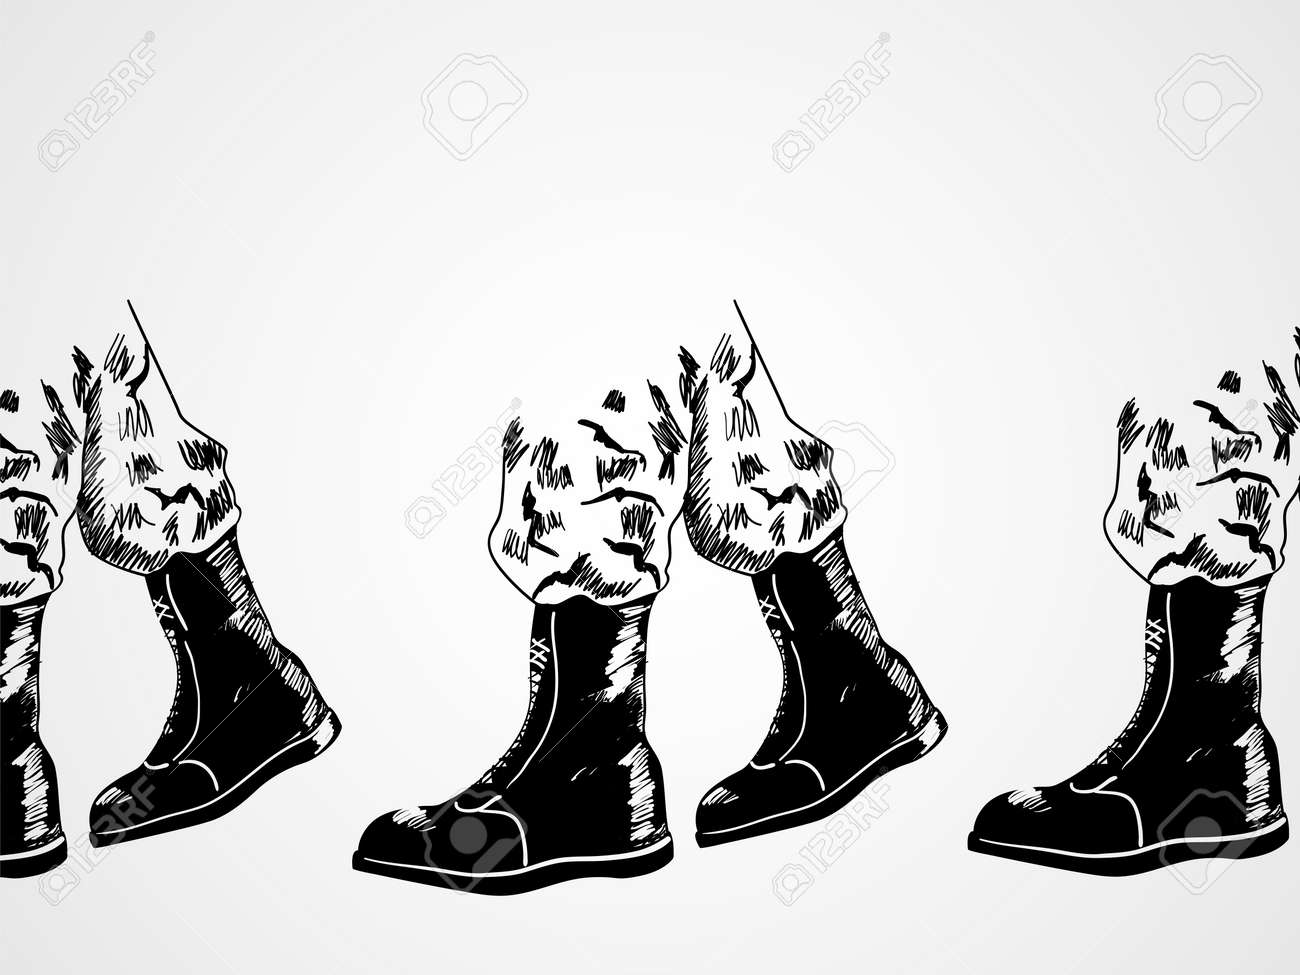 Sketch illustration of army boots lined up, marching. Invasion, war concept - 50794343